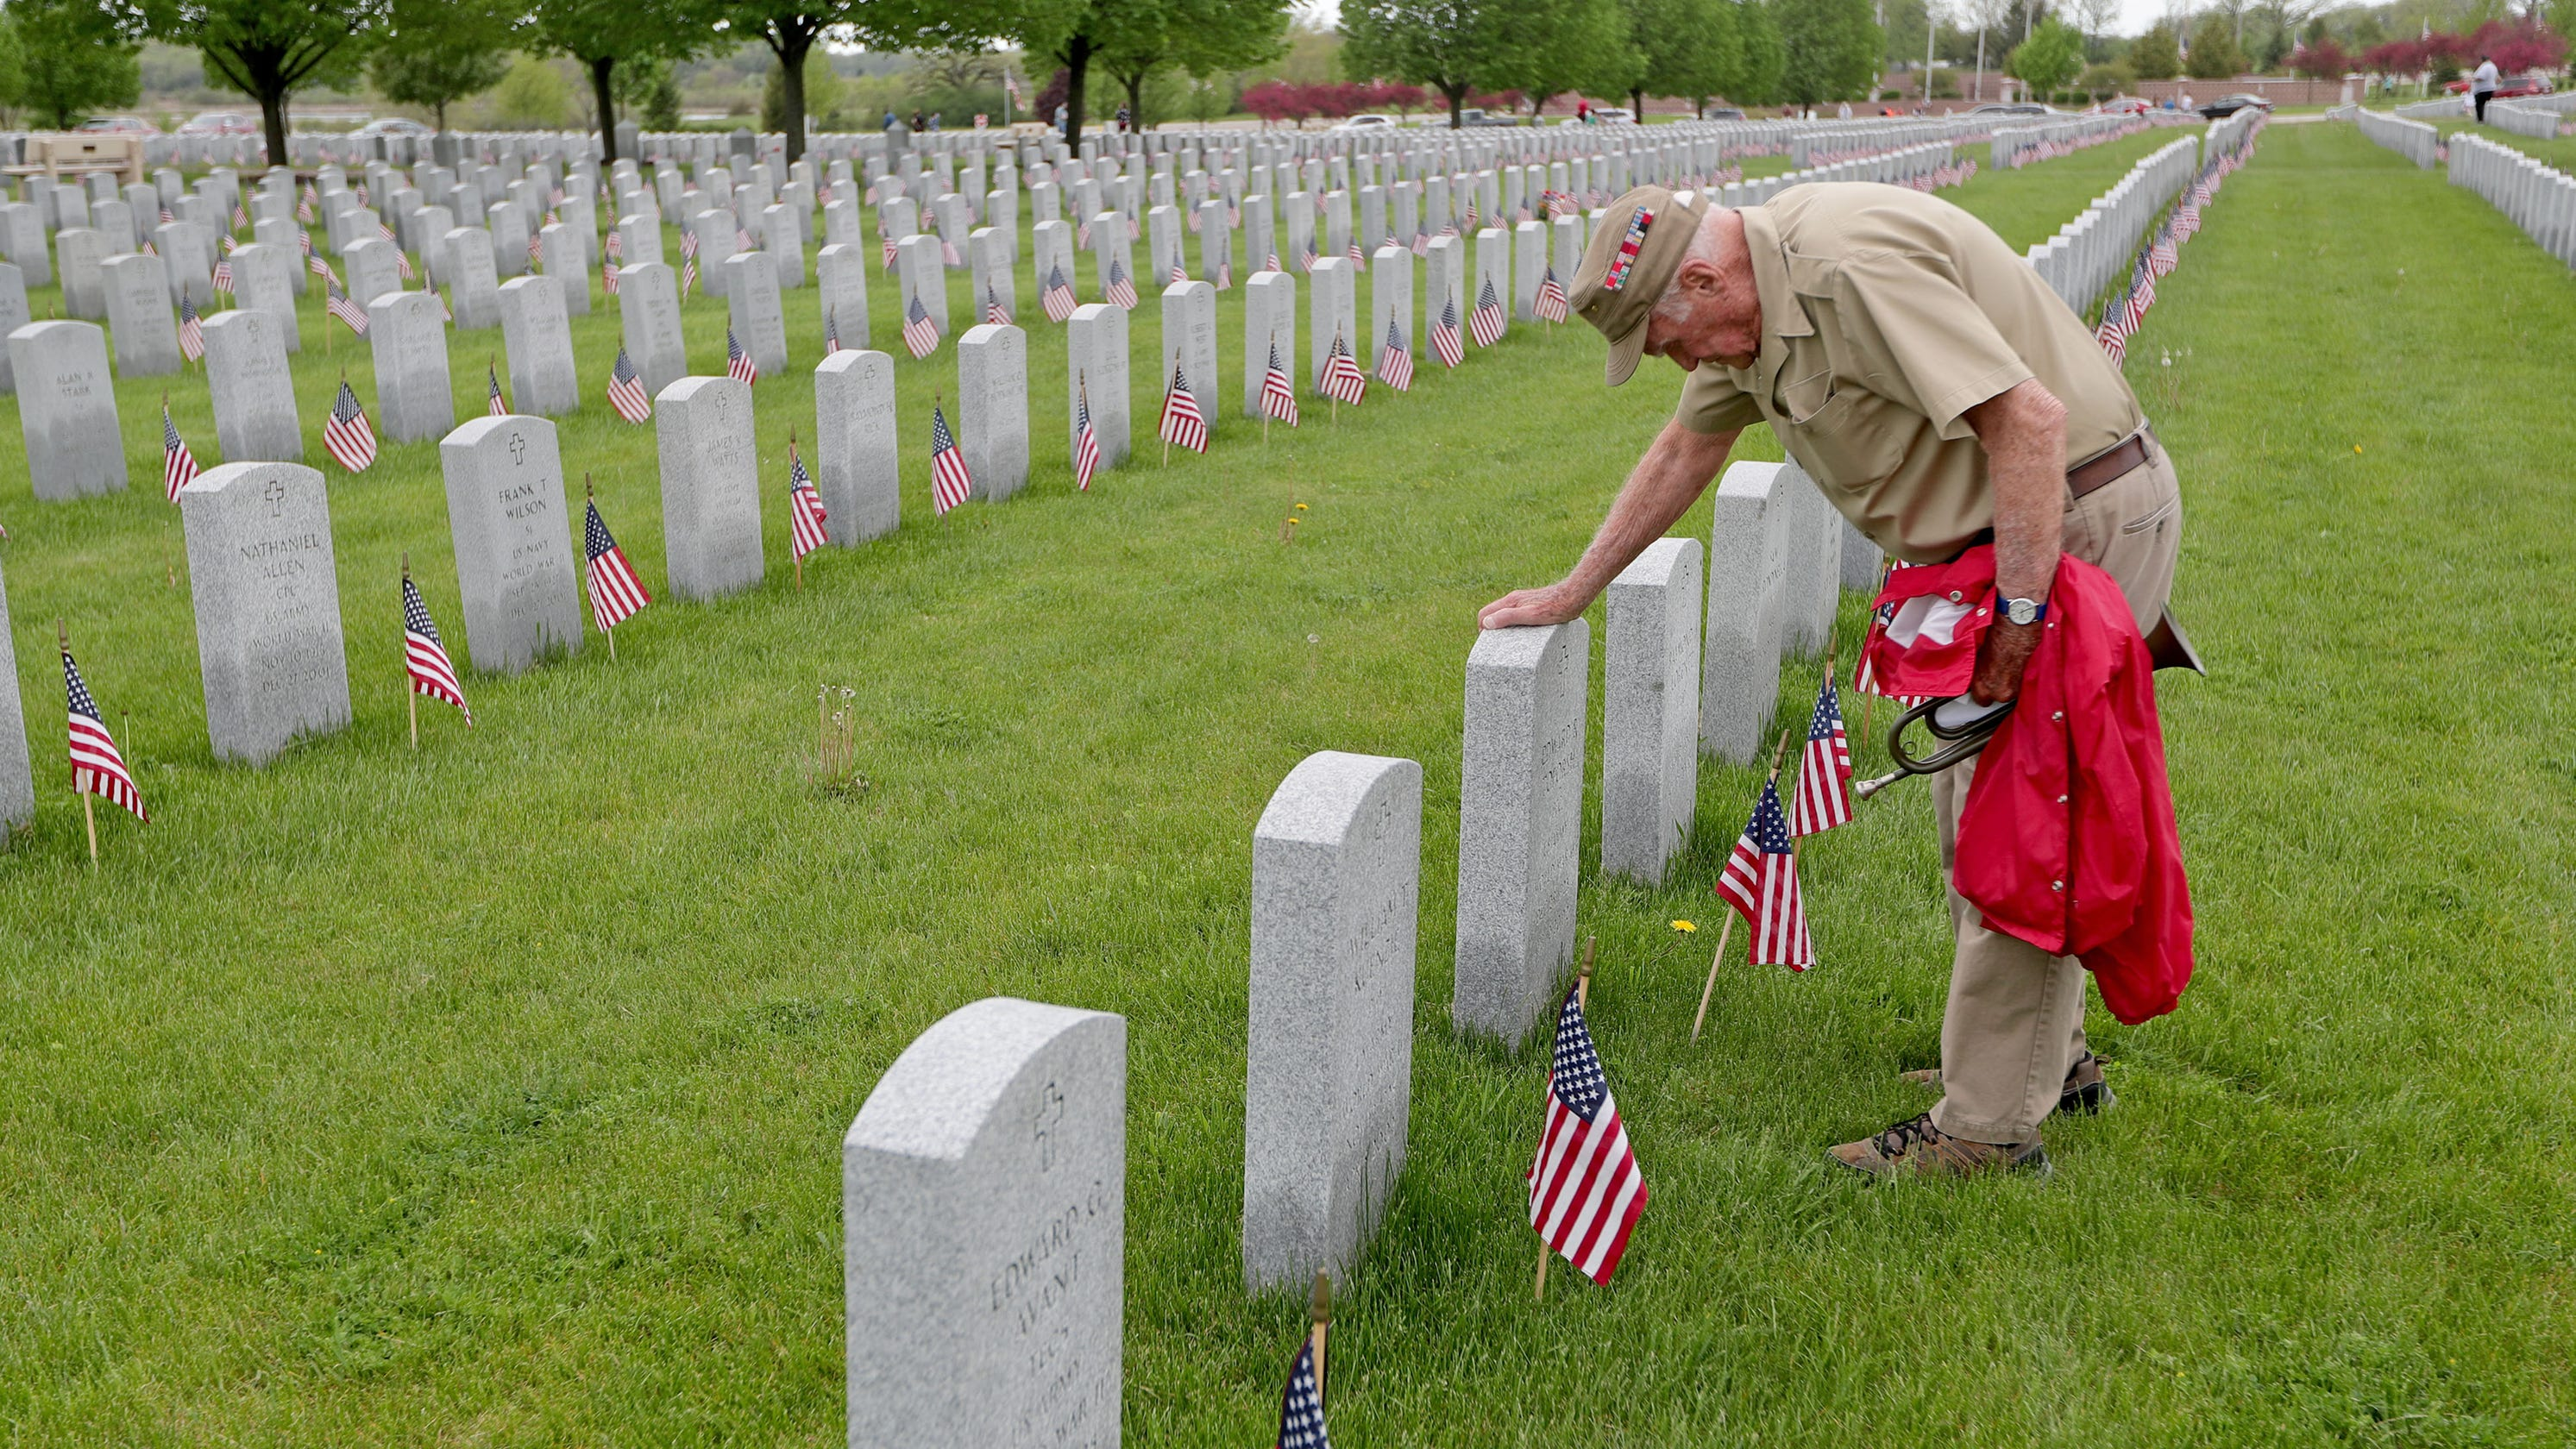 No official ceremony, but lots of intimate Memorial Day ceremonies at Union Grove cemetery